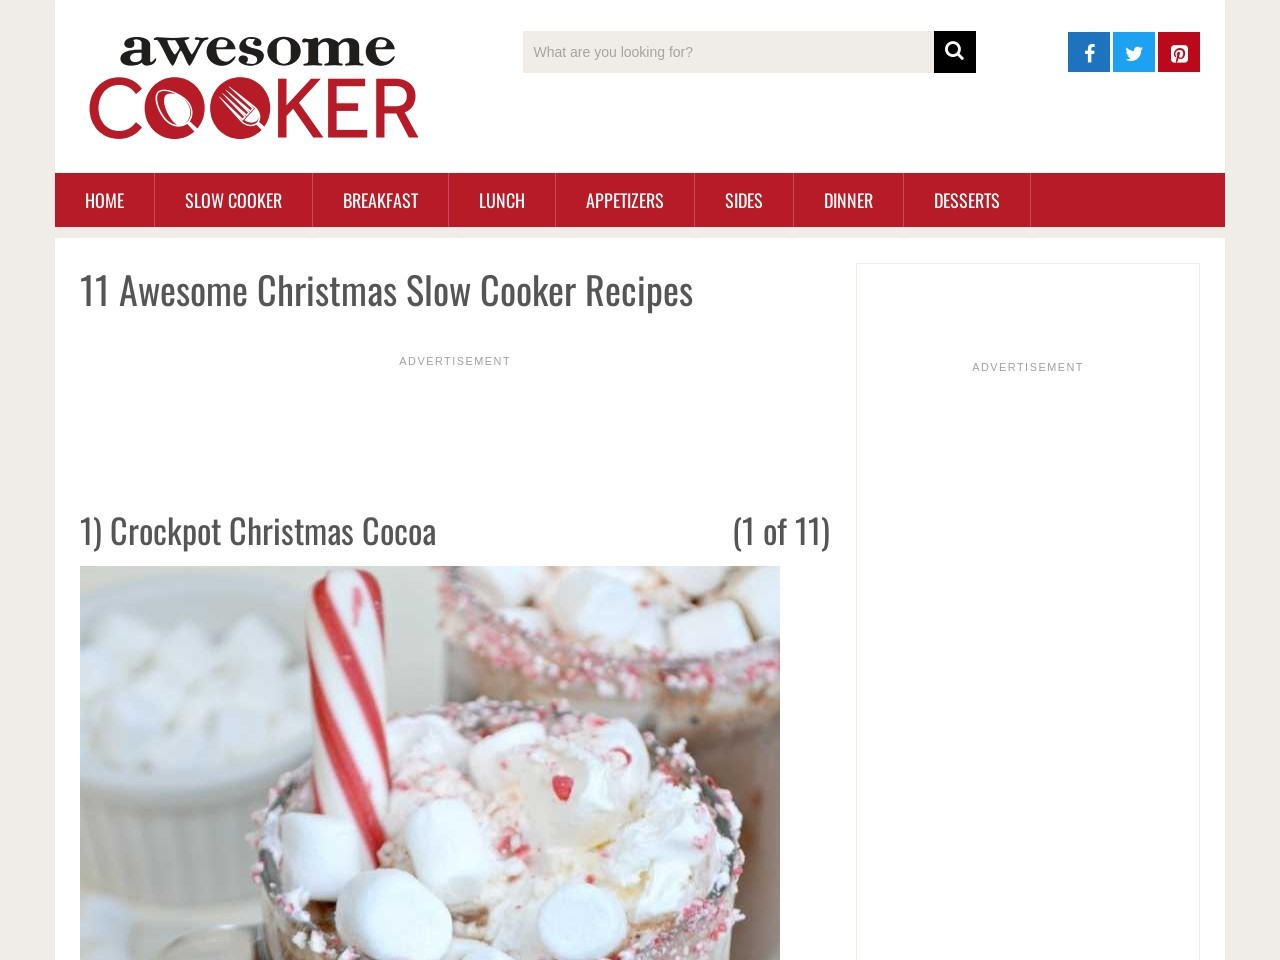 10 Awesome Christmas Slow Cooker Recipes | Kind Of Viral